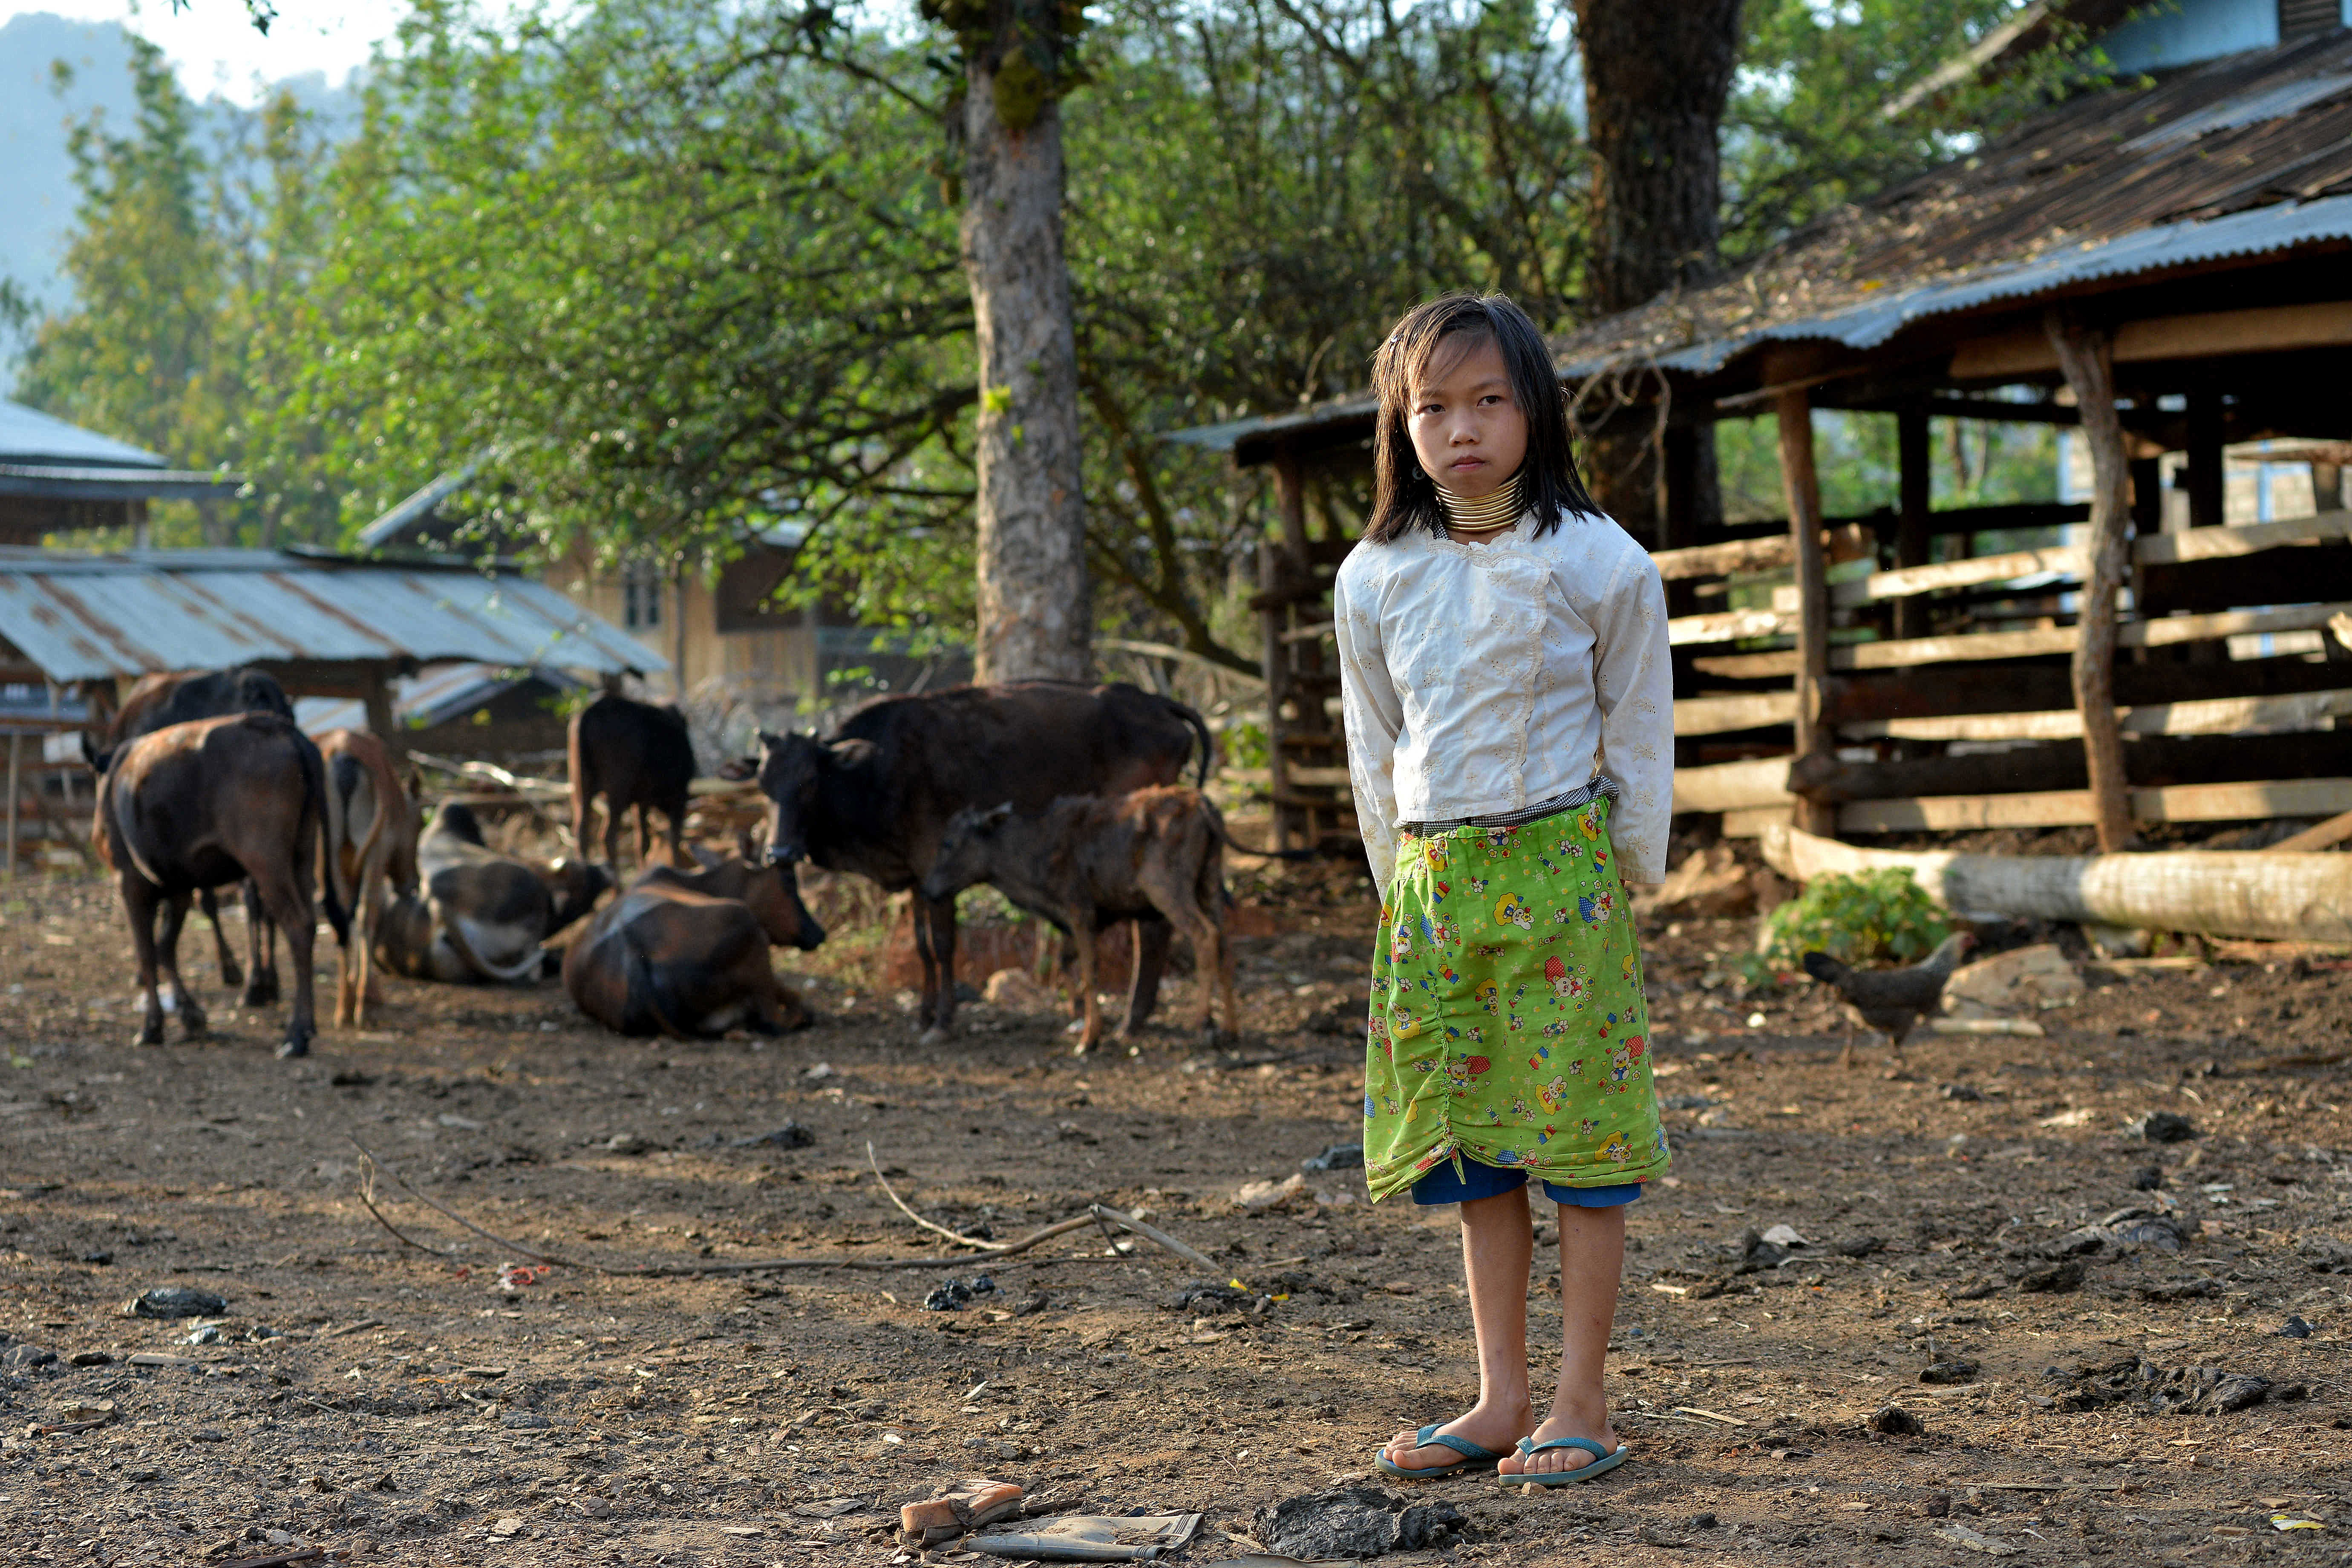 """In this picture taken on March 6, 2016 a Kayan tribesgirl wearing a stack of bronze neck coils -- the statuesque sign of beauty of her Kayan tribe -- stands in Panpet village located in Demoso township in Kayah state, central Myanmar. For years Kayan women and girls have been driven across the border by poverty and conflict to pose in holidaymakers' pictures in purpose-built Thai villages, decried by campaigners as """"human zoos"""" that exploit a vulnerable minority. / AFP PHOTO / PHYO HEIN KYAW / TO GO WITH AFP STORY: Myanmar-Thailand-tourism-leisure-culture, FEATURE by Phyo Hein Kyaw"""